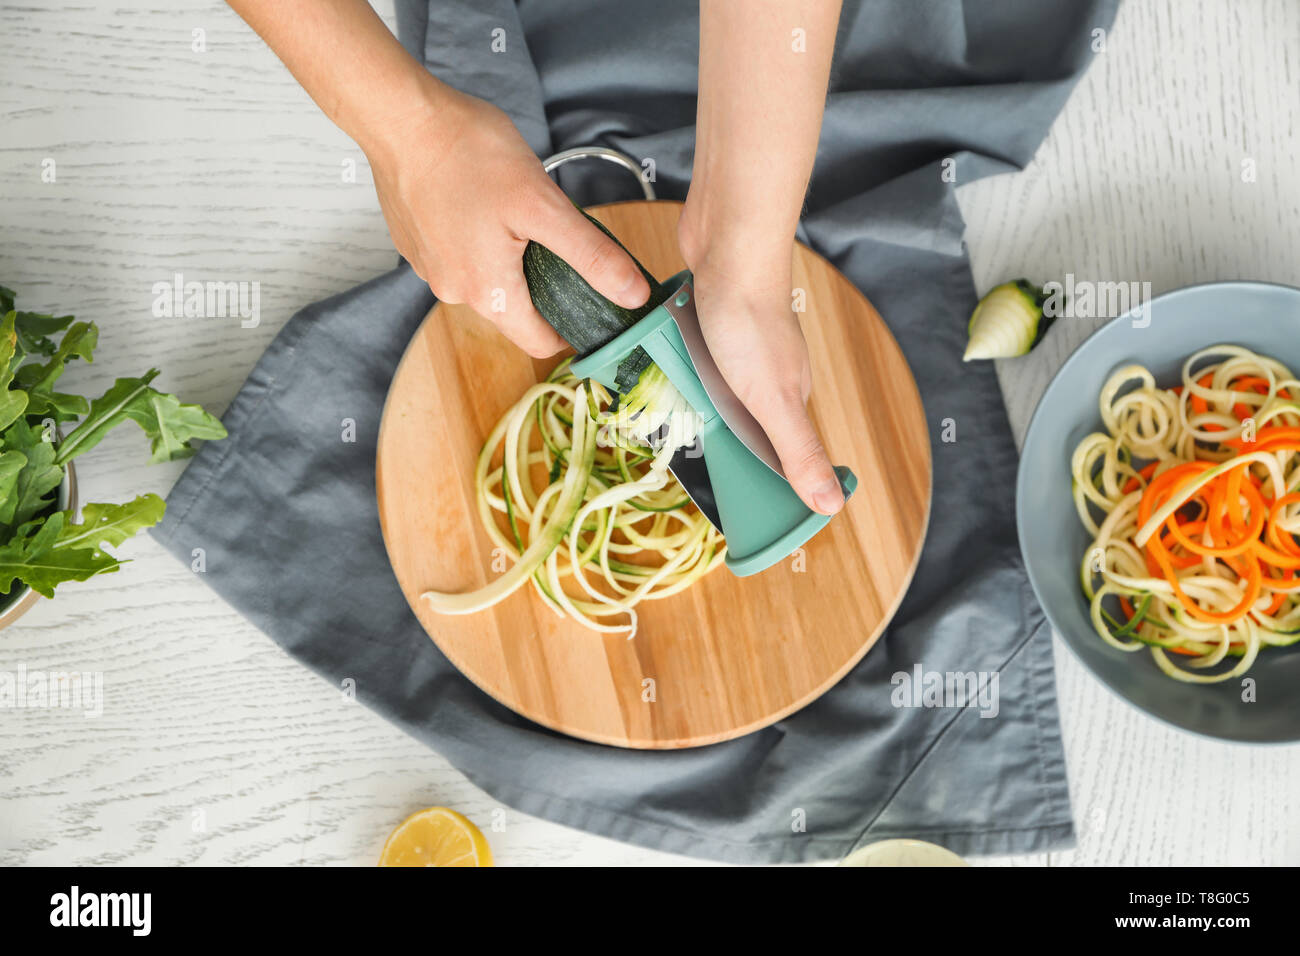 Woman making zucchini spaghetti Stock Photo